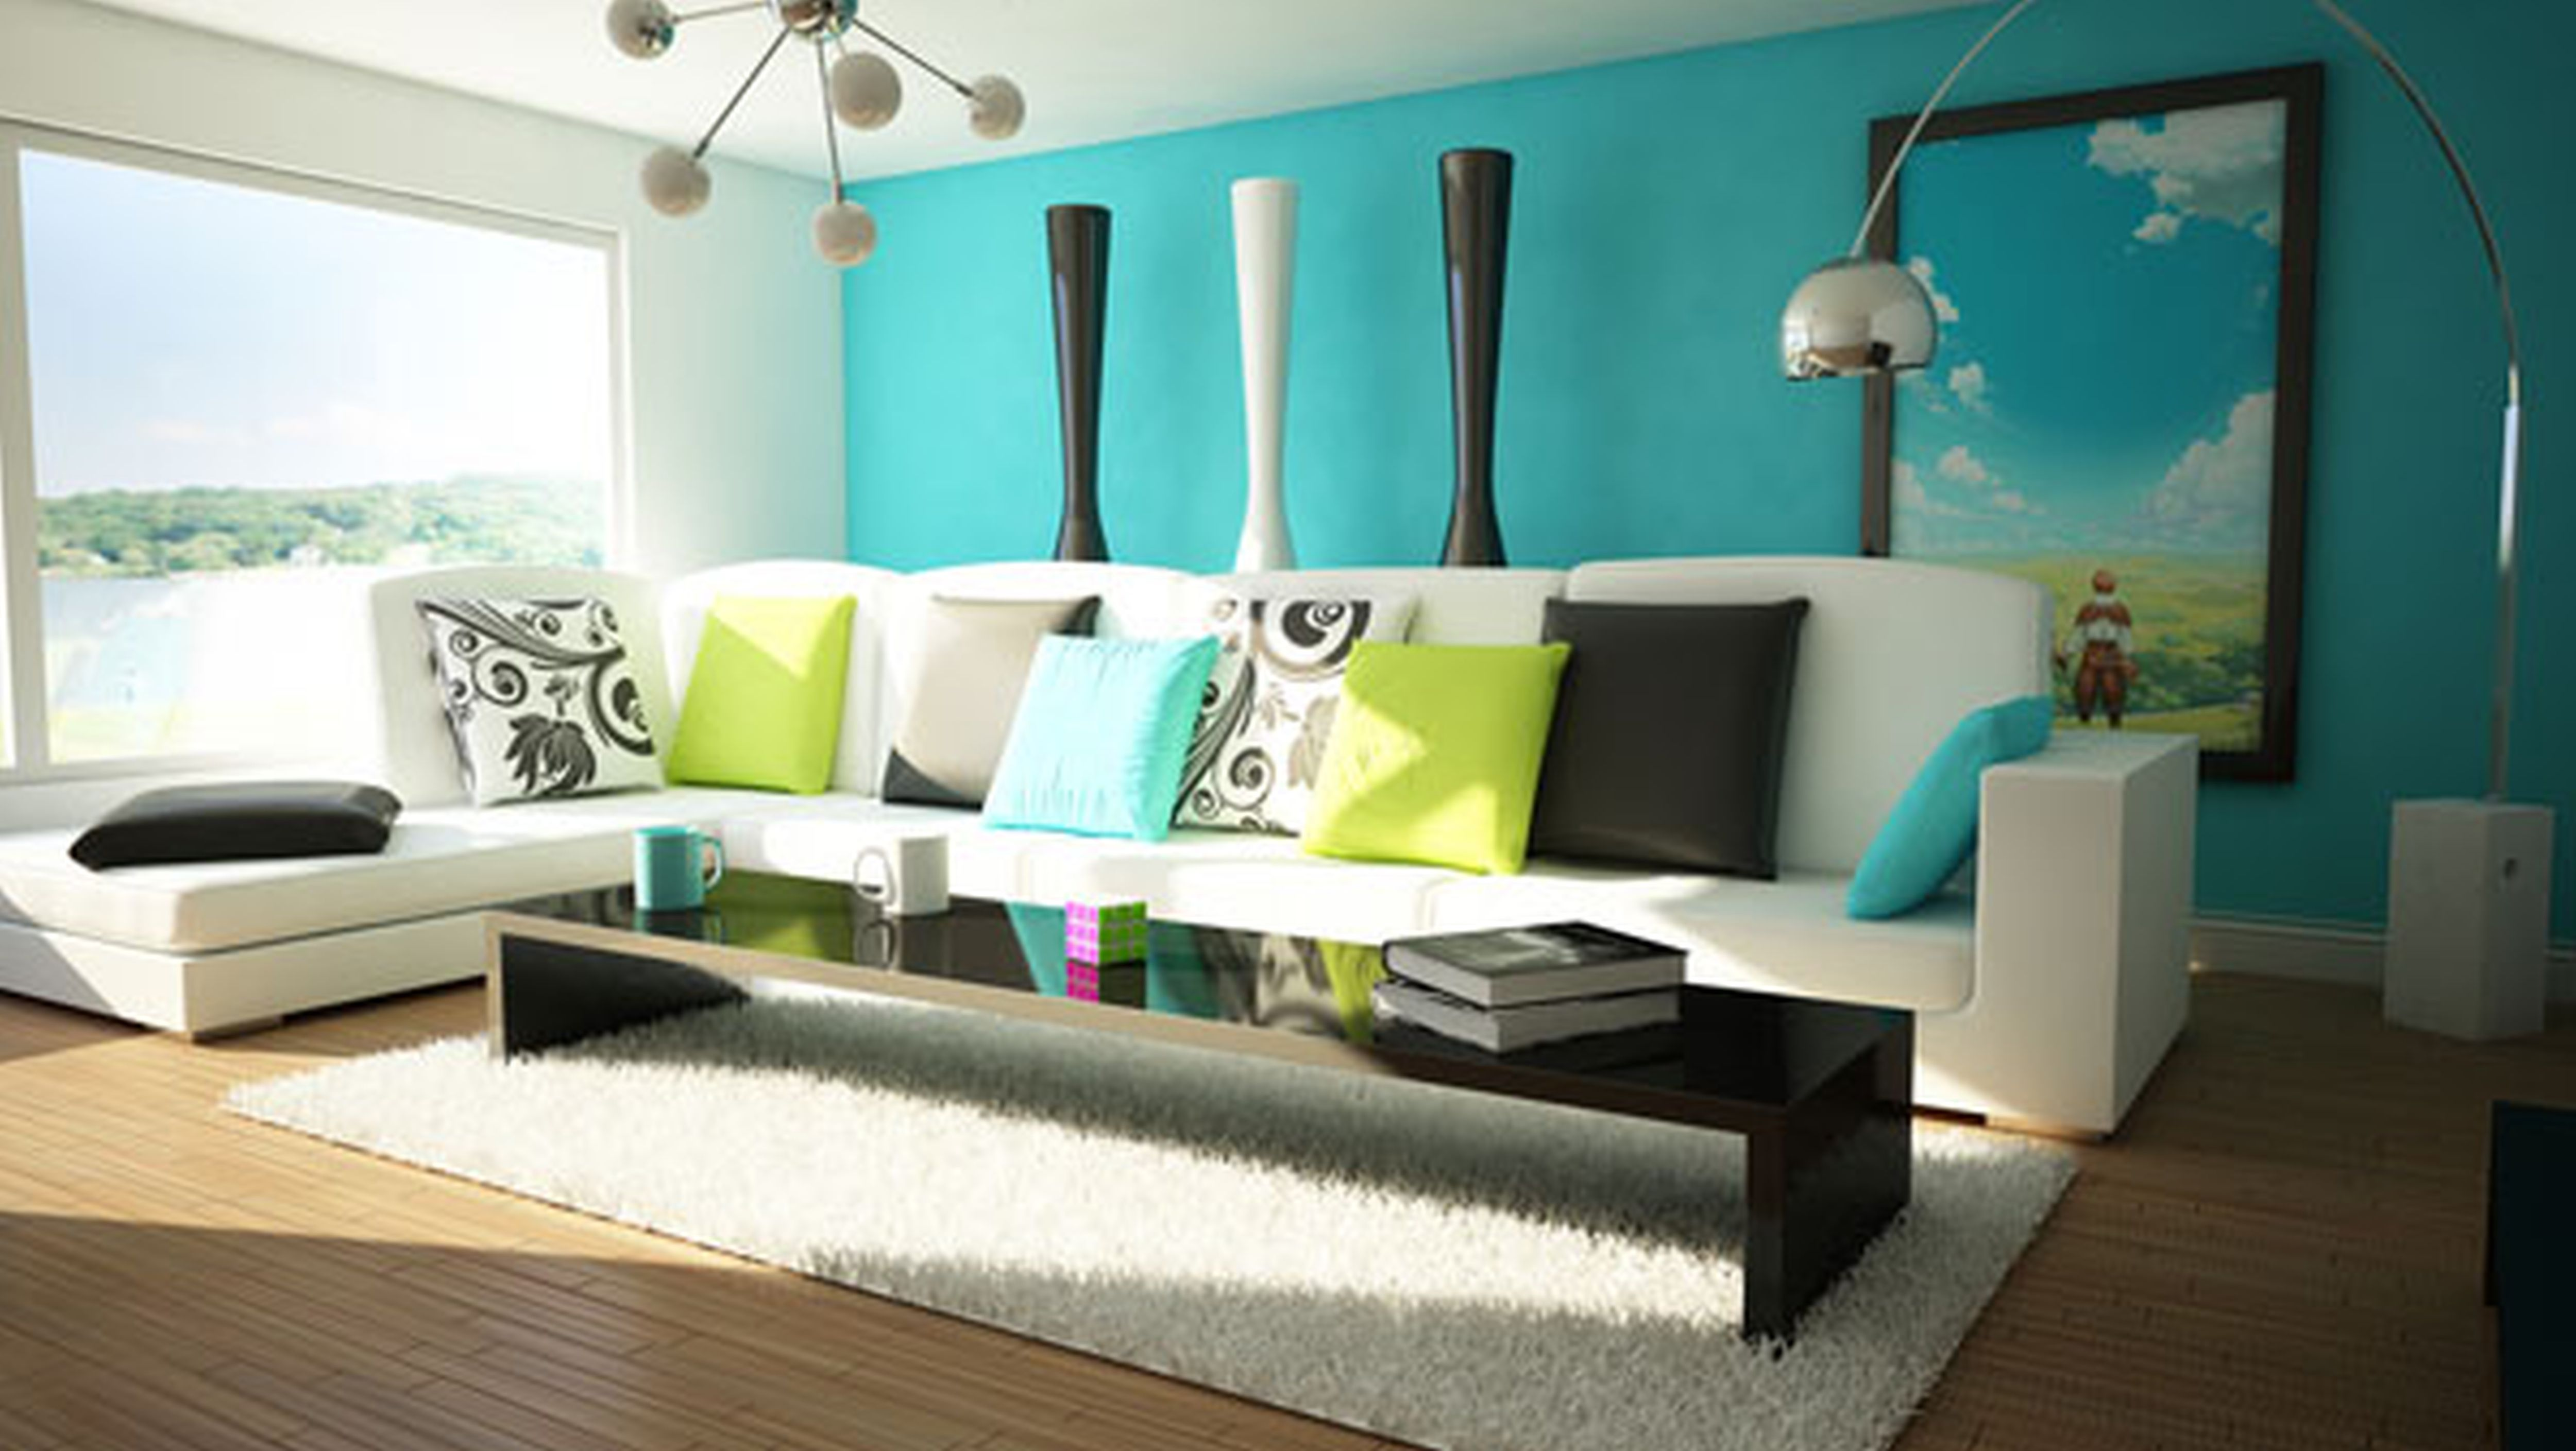 Interior Design Ideas Living Room Color Scheme Living Room Breathtaking Colorful Interior Design For Living Room